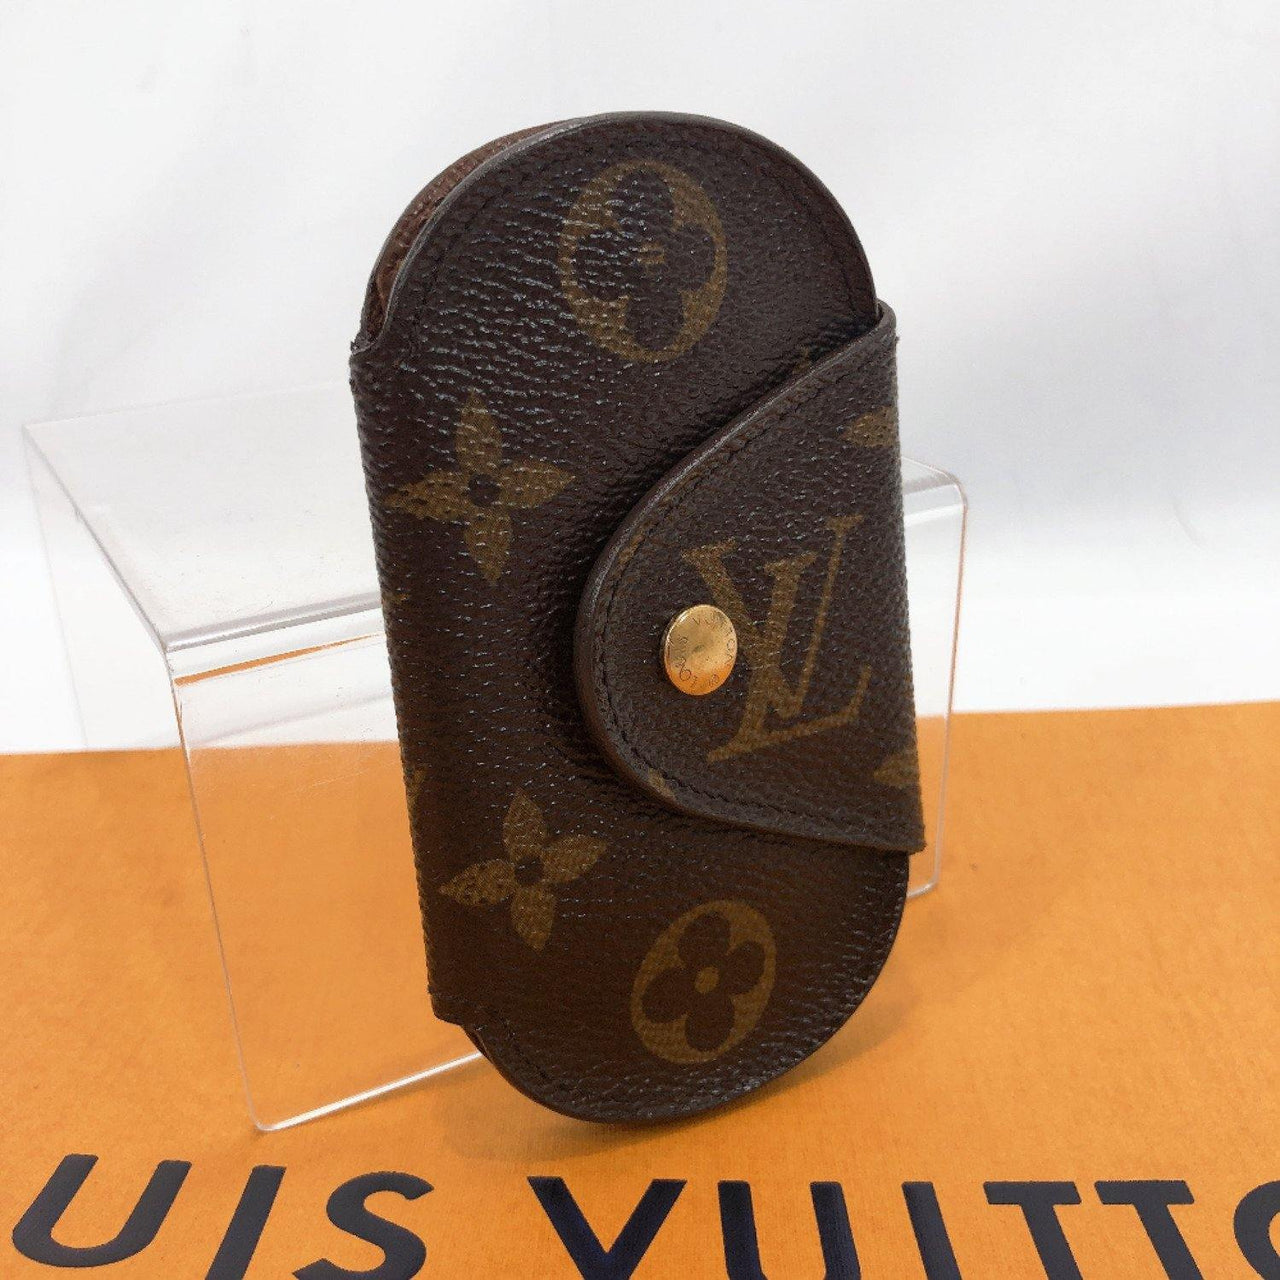 LOUIS VUITTON key holder M60115 Multicles Ron PM 4 hooks Monogram canvas Brown unisex Used